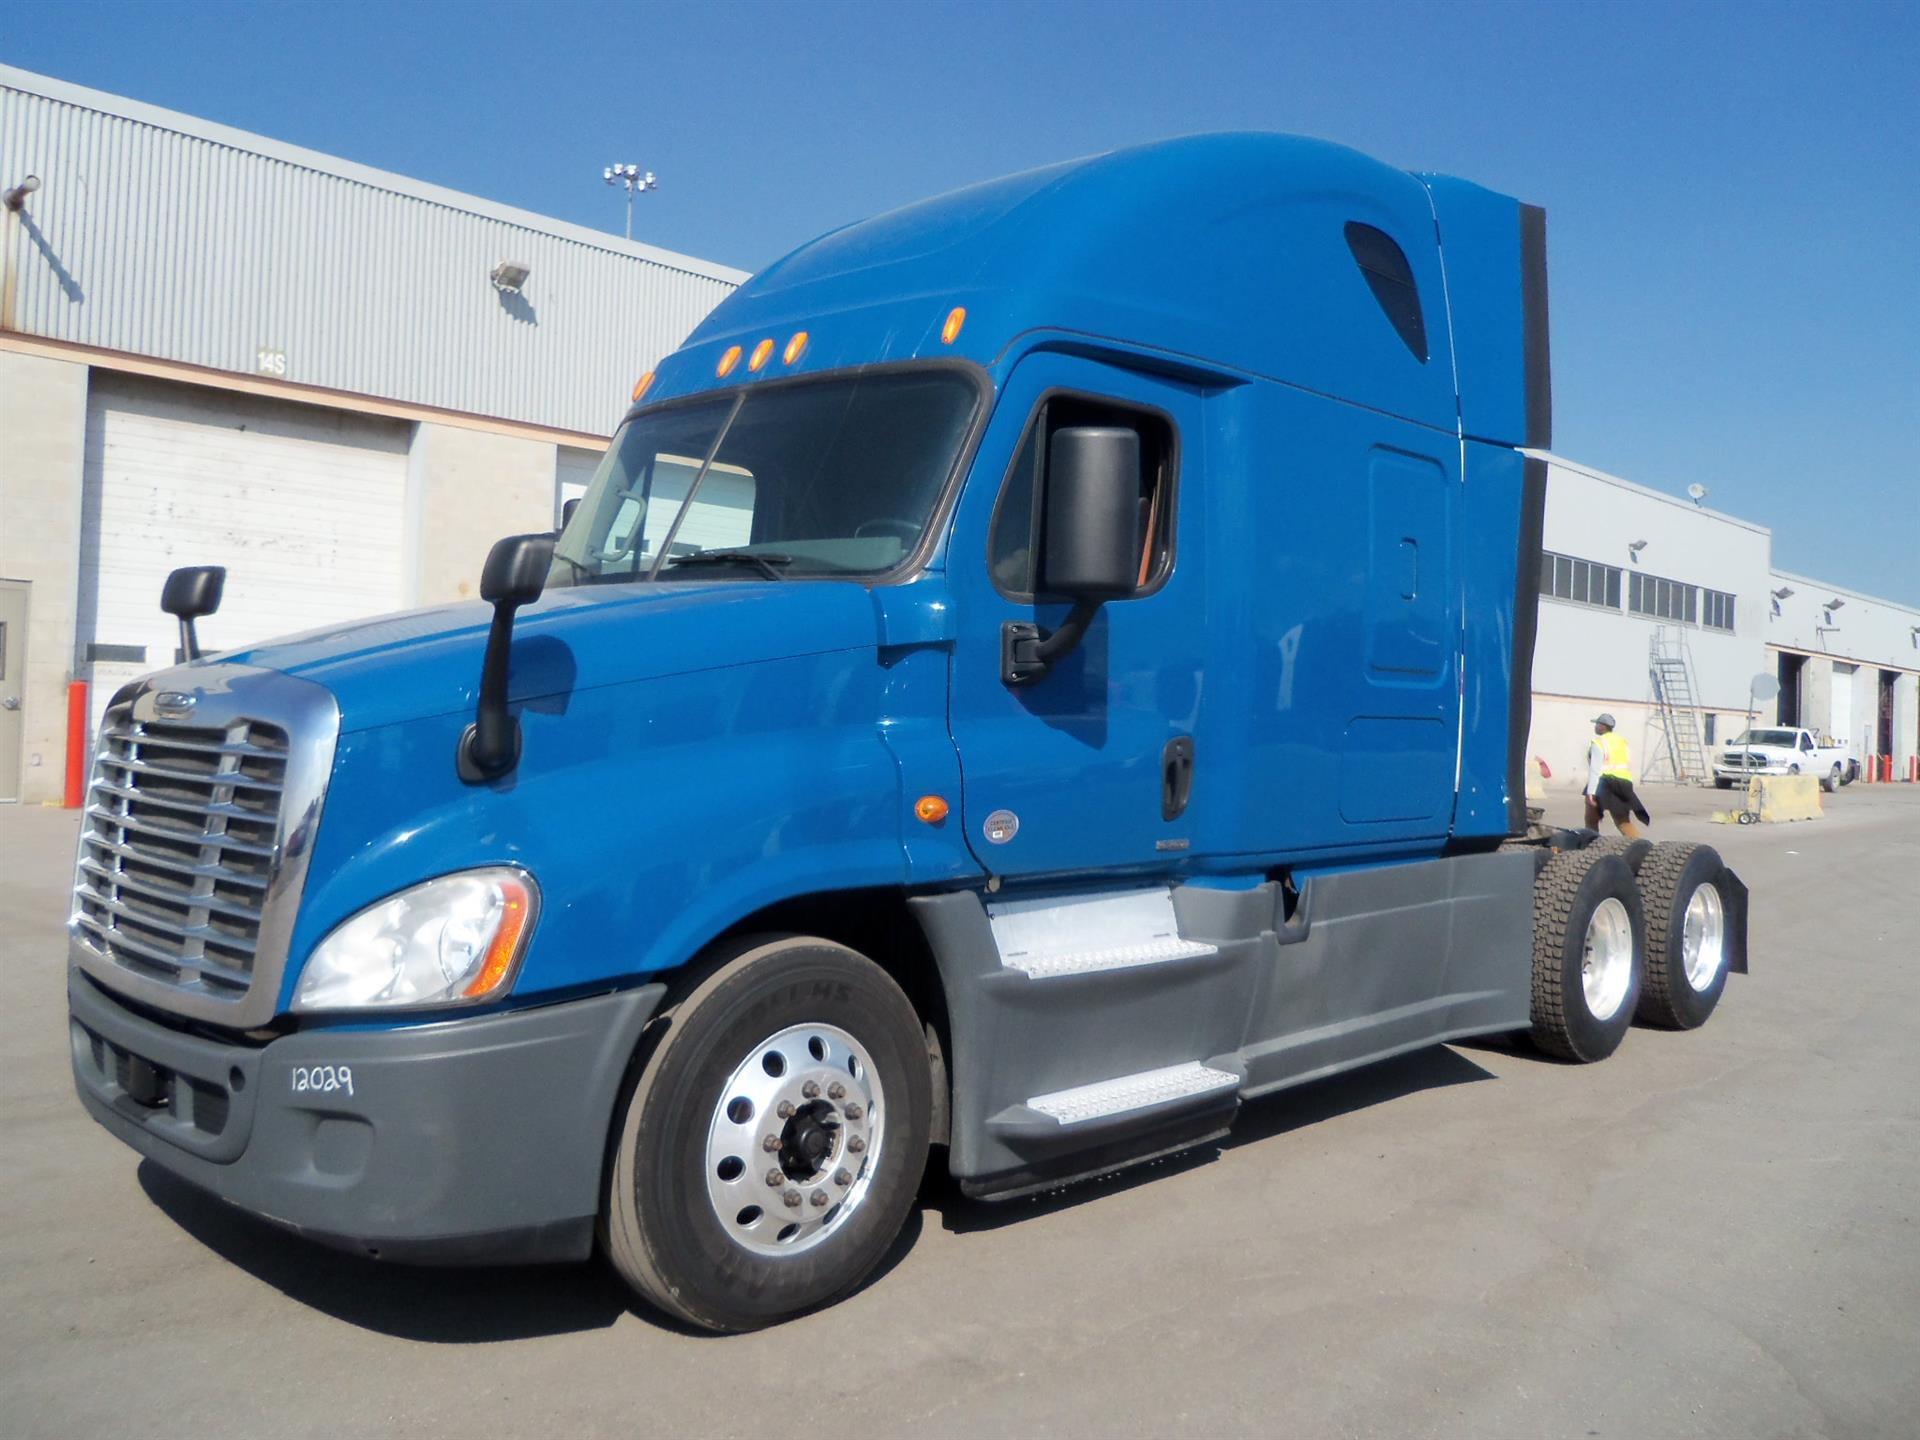 USED 2014 FREIGHTLINER CASCADIA SLEEPER TRUCK #131846